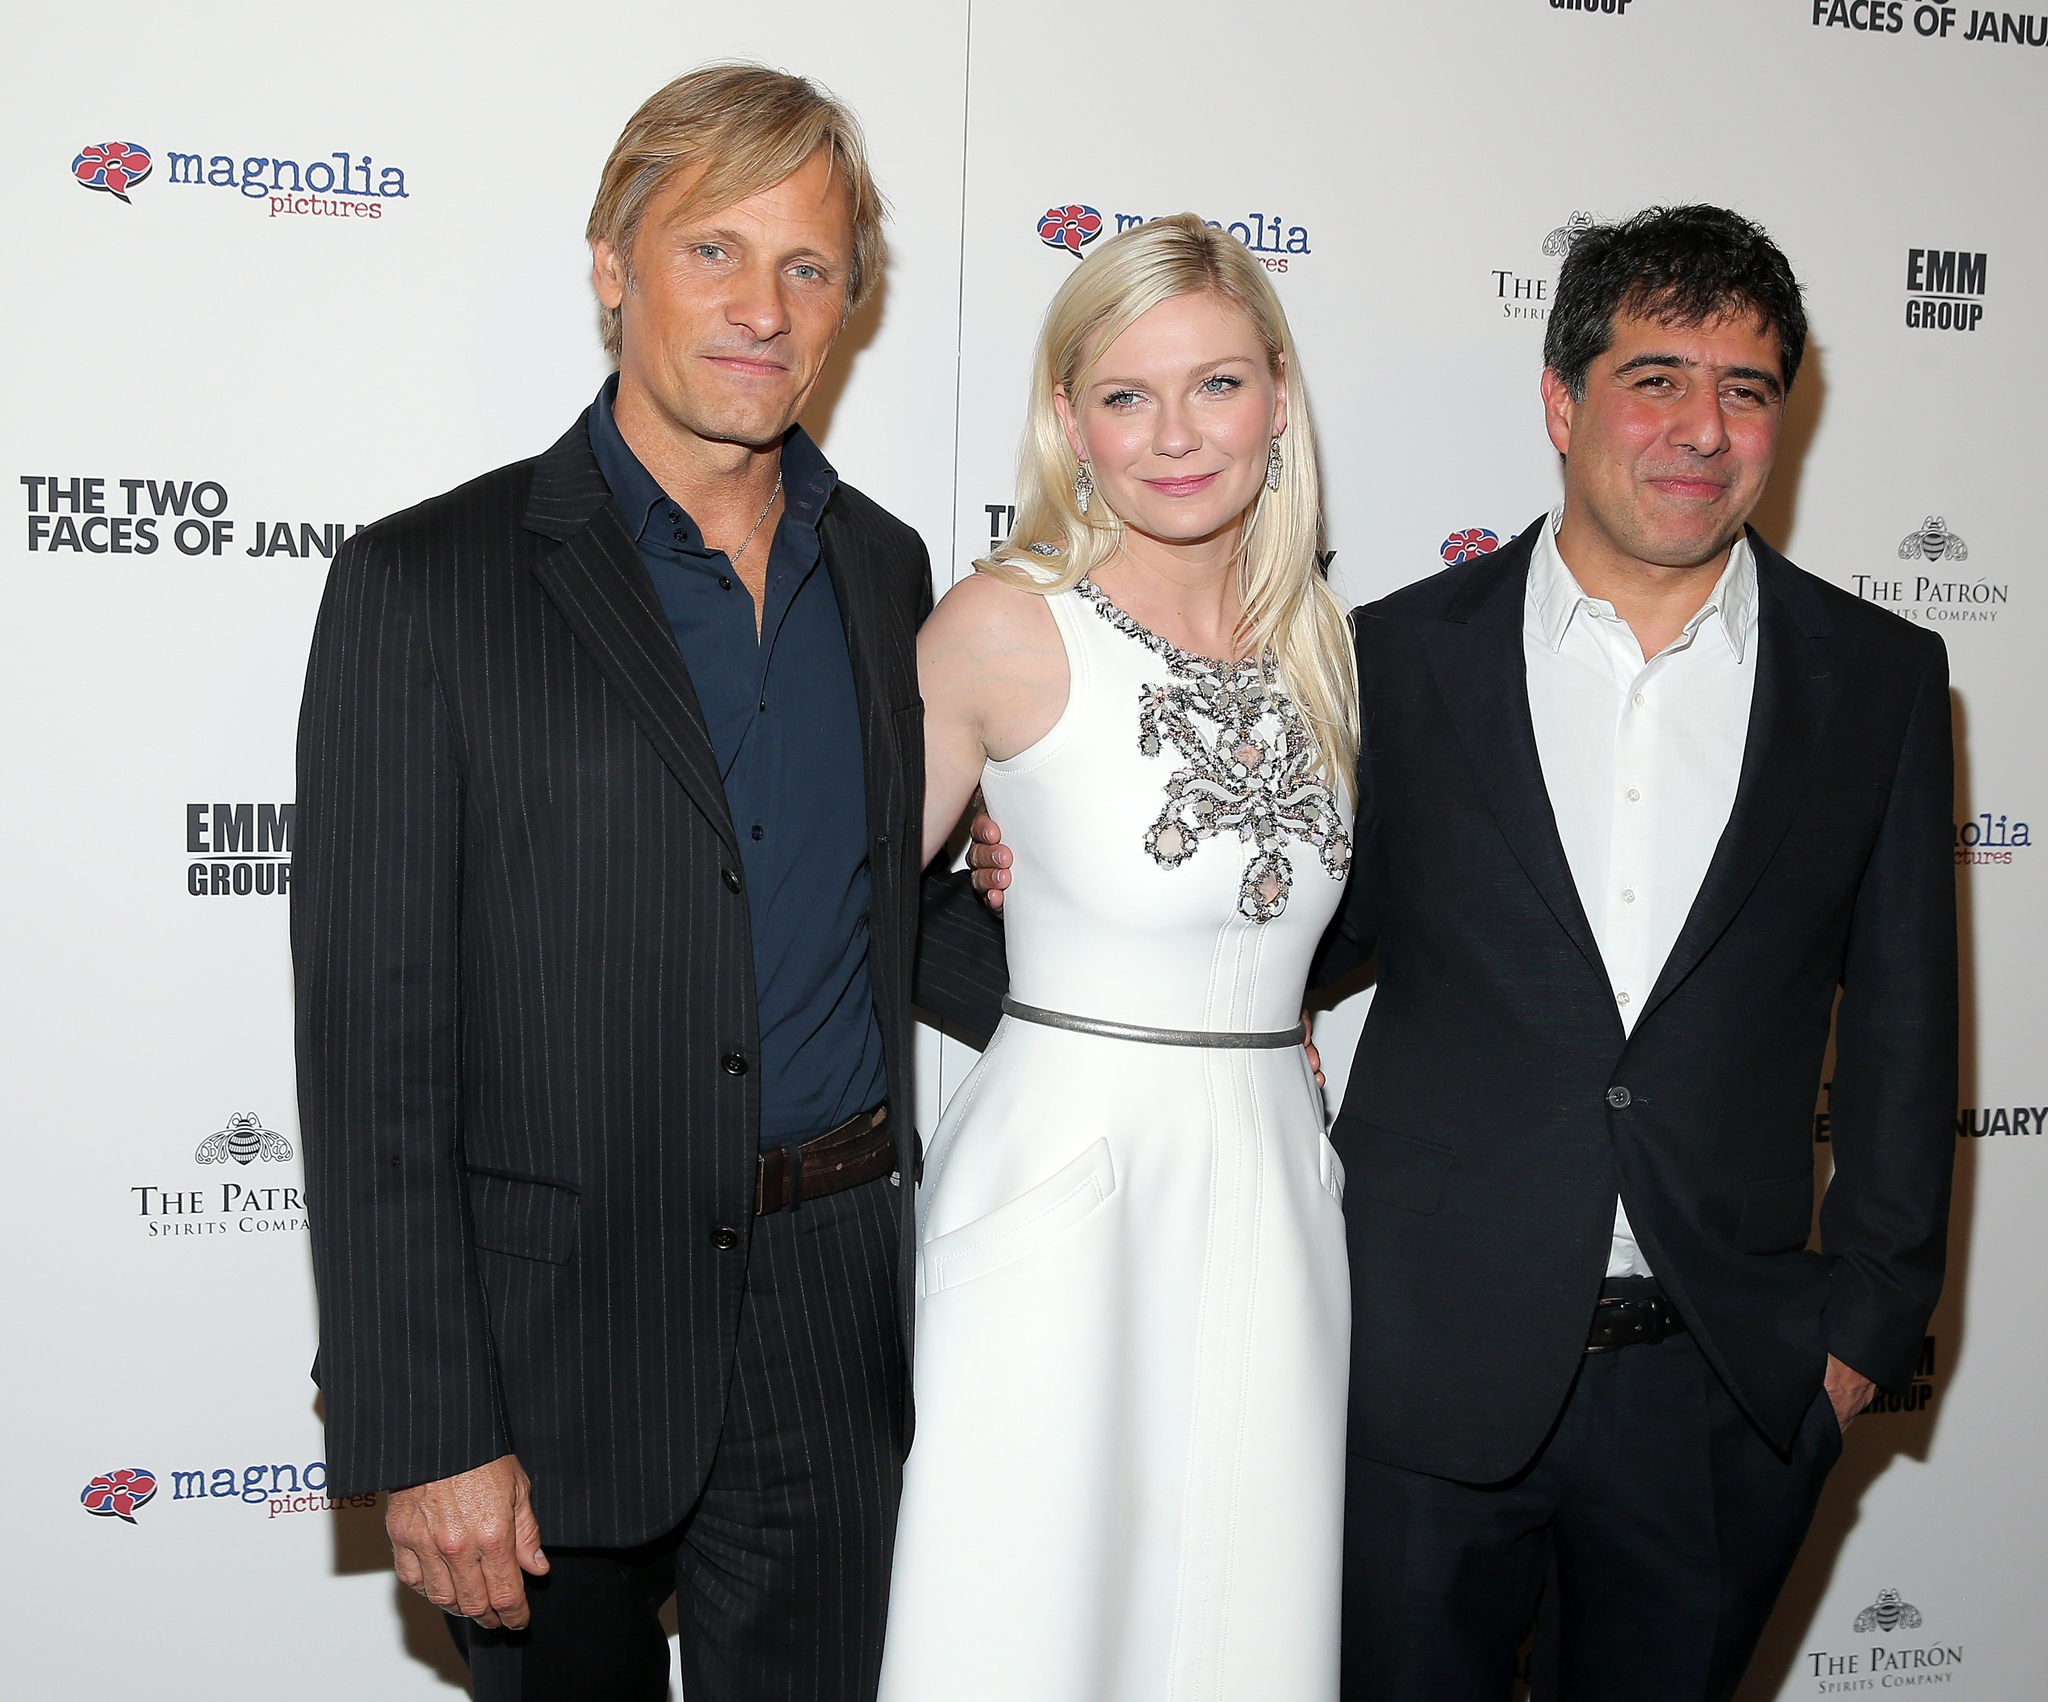 Kirsten Dunst, Viggo Mortensen, and Hossein Amini at an event for The Two Faces of January (2014)